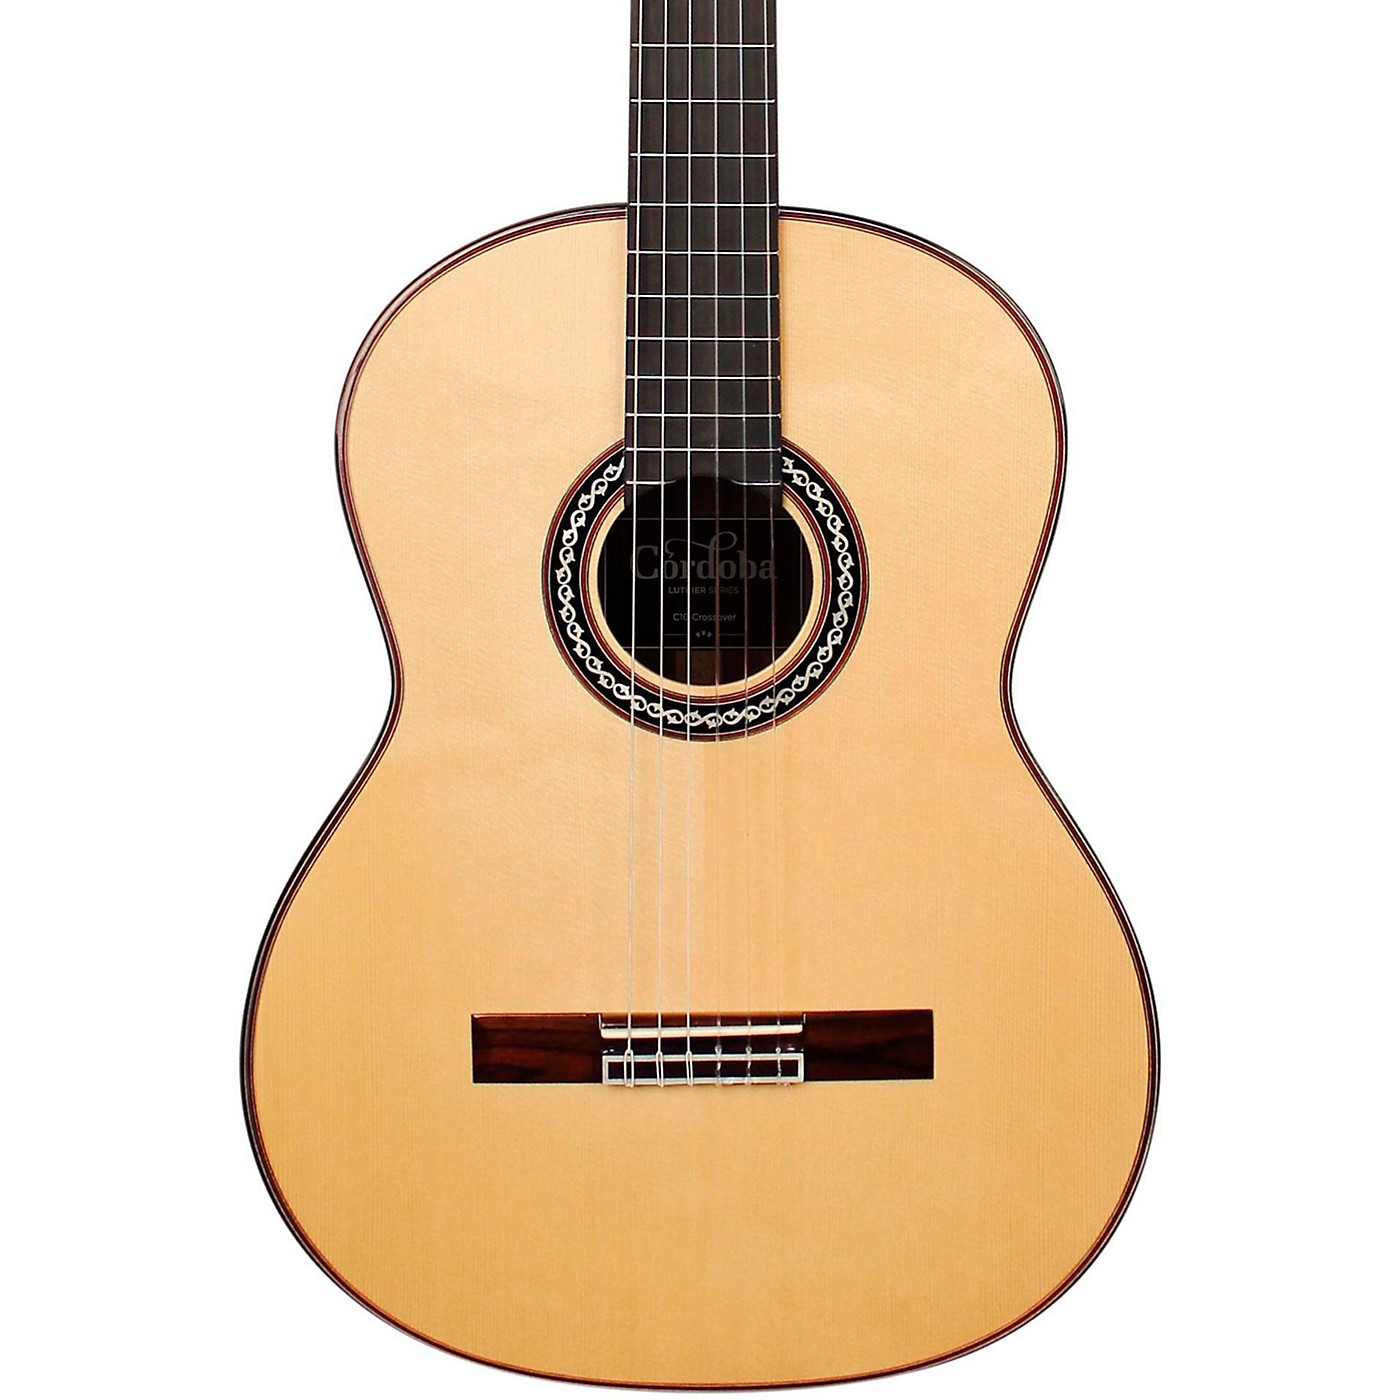 Cordoba C10 Crossover Nylon String Acoustic Guitar thumbnail